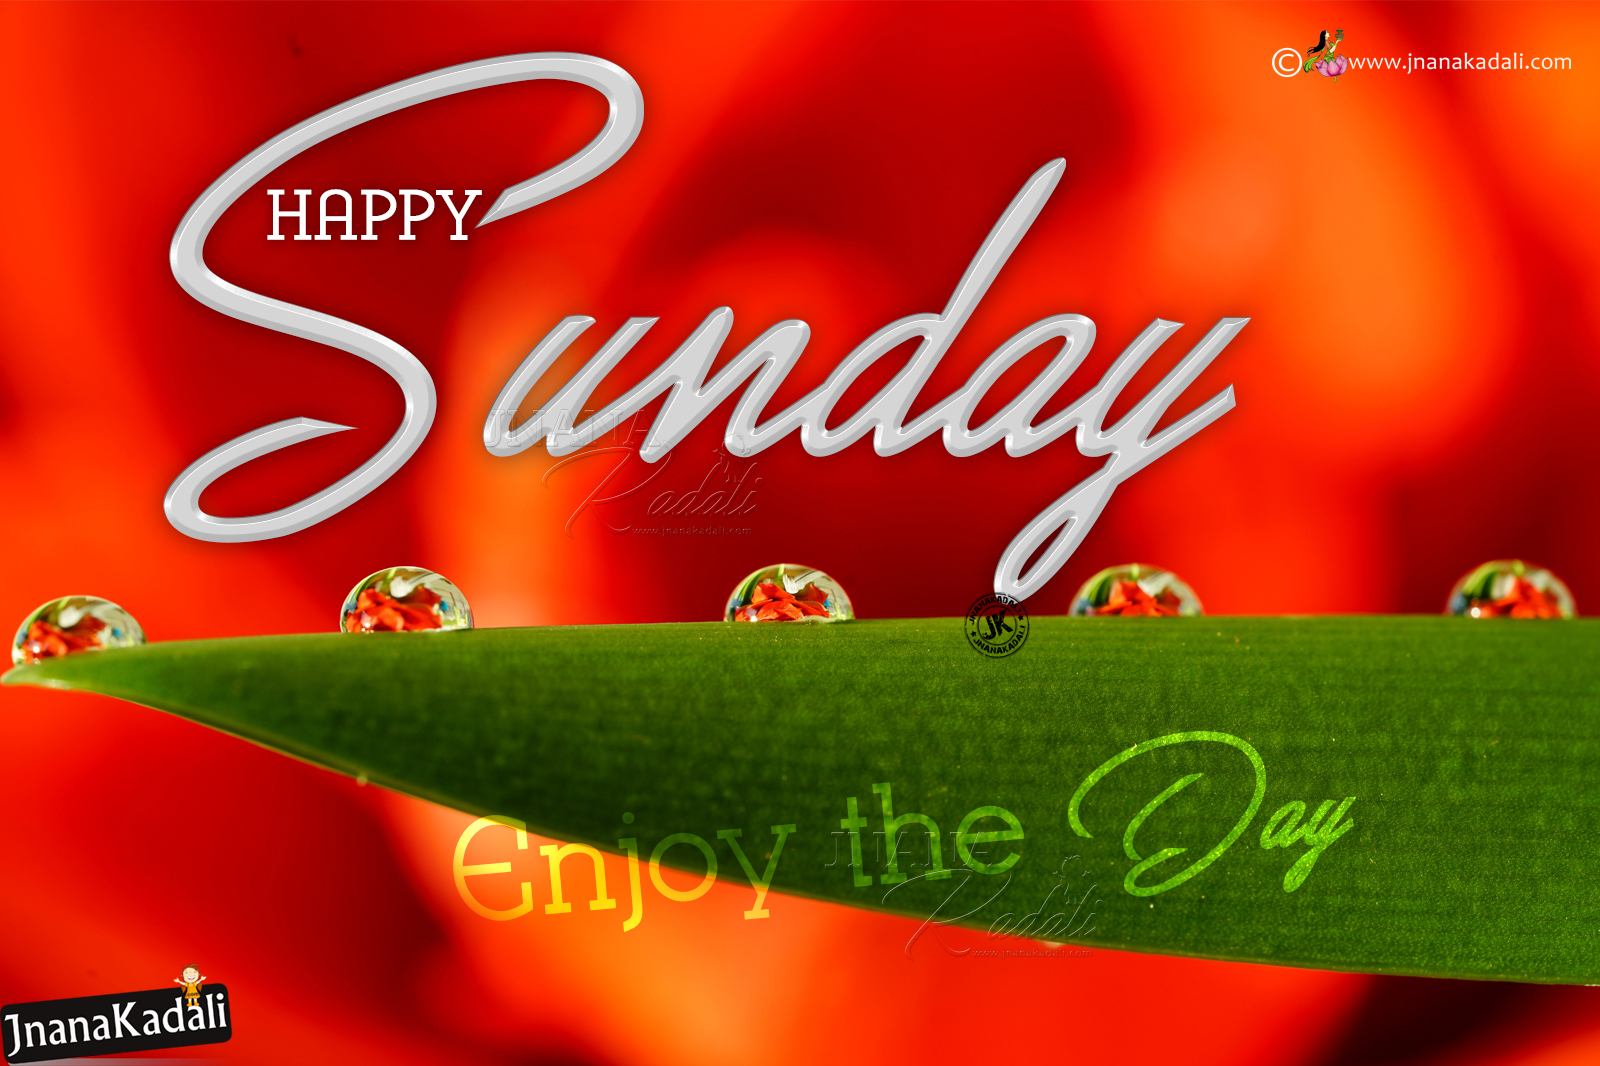 Happy sunday greetings in english enjoy sunday wallpapers happy sunday images pictures in english hapy sunday english greetings best happy sunday wallpapers voltagebd Choice Image